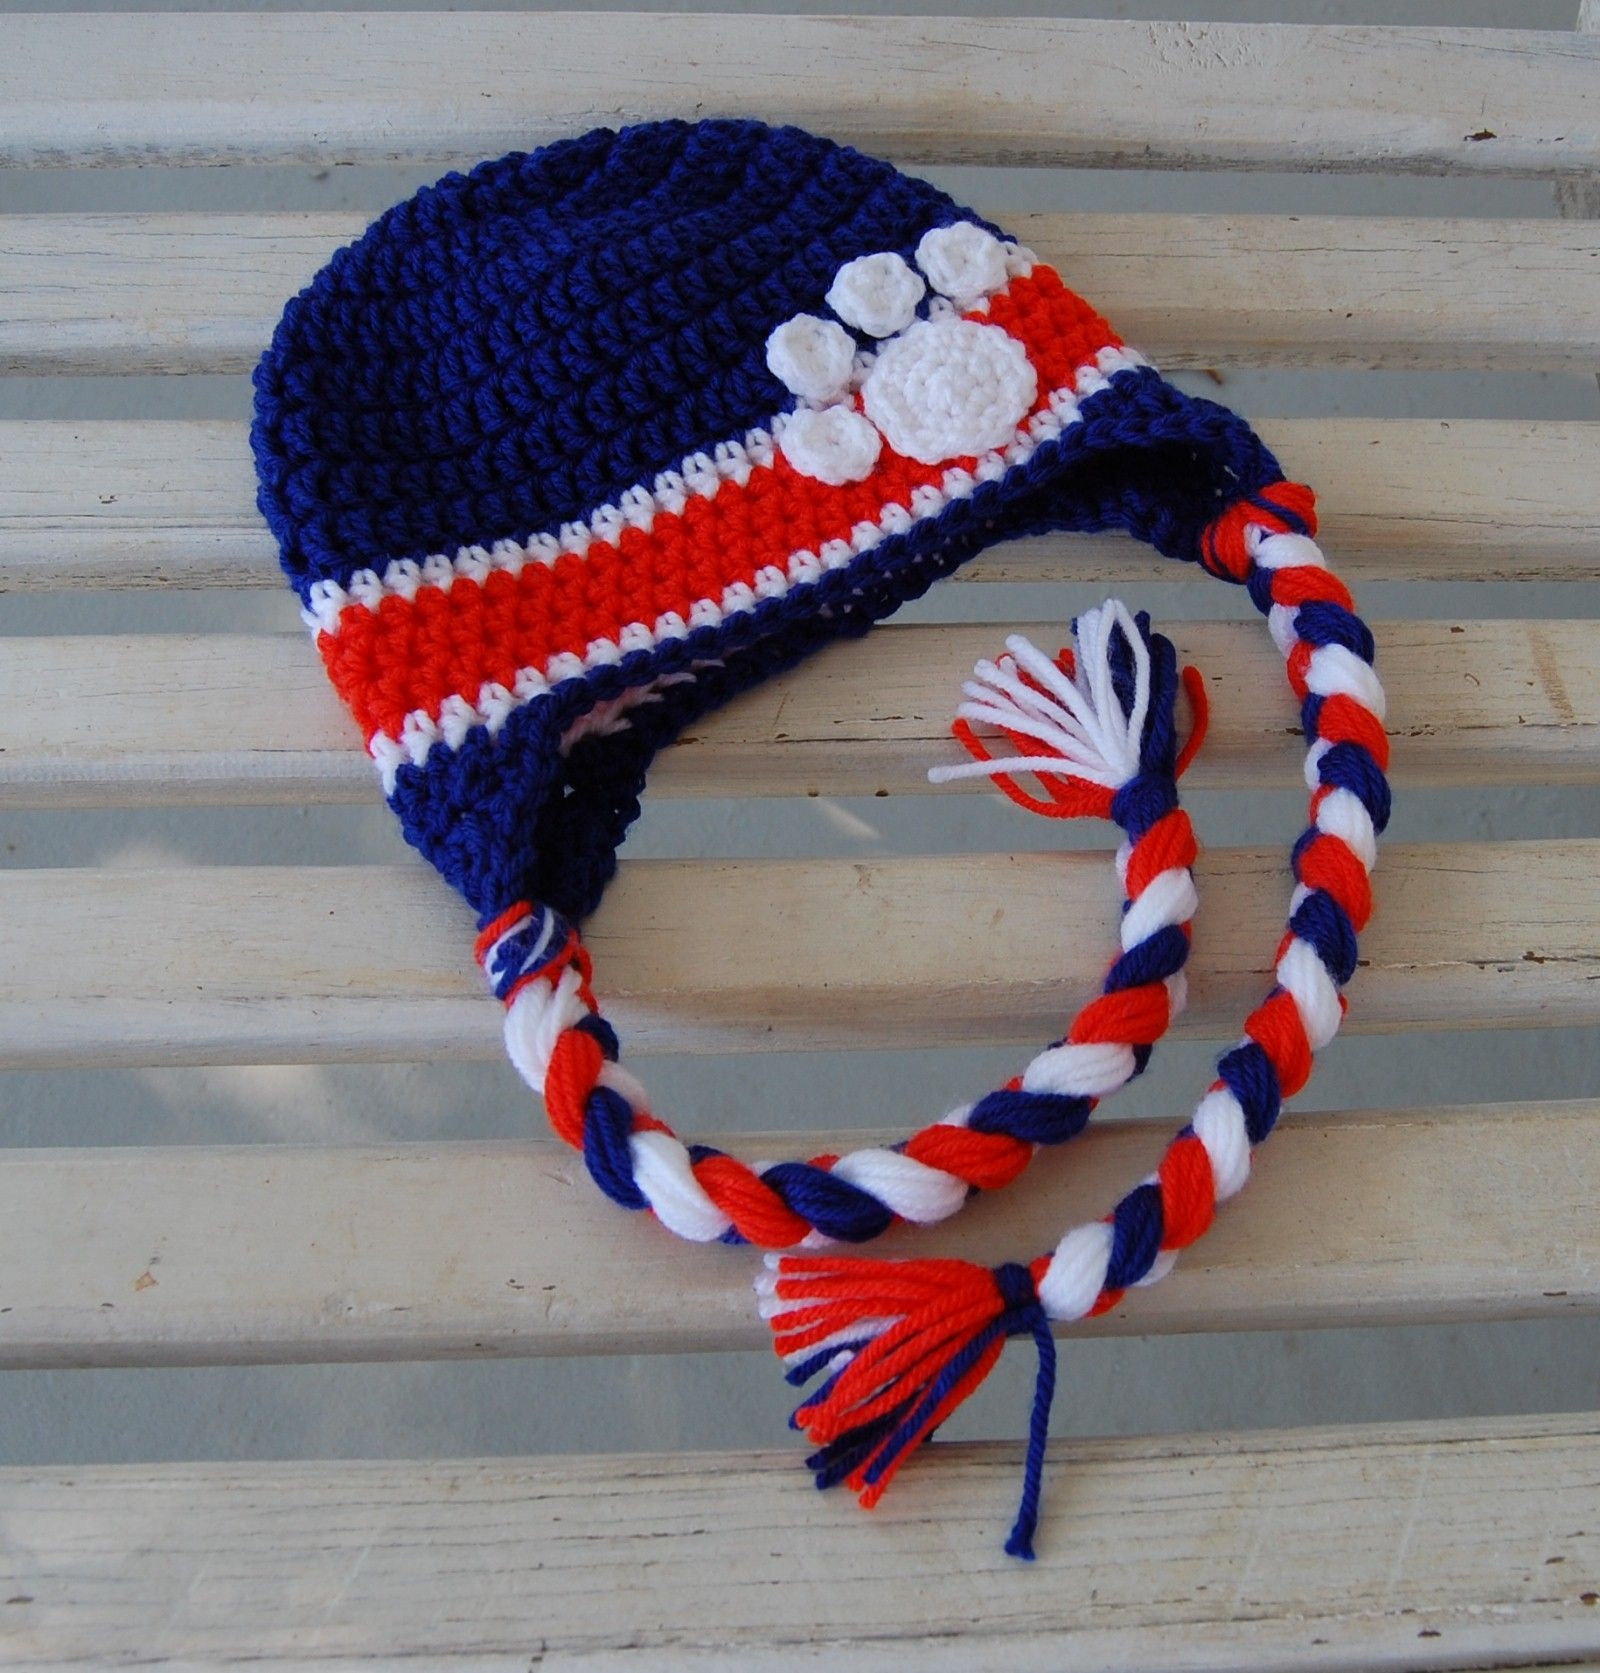 Crochet clemson fan hat crocheted pieces pinterest crochet